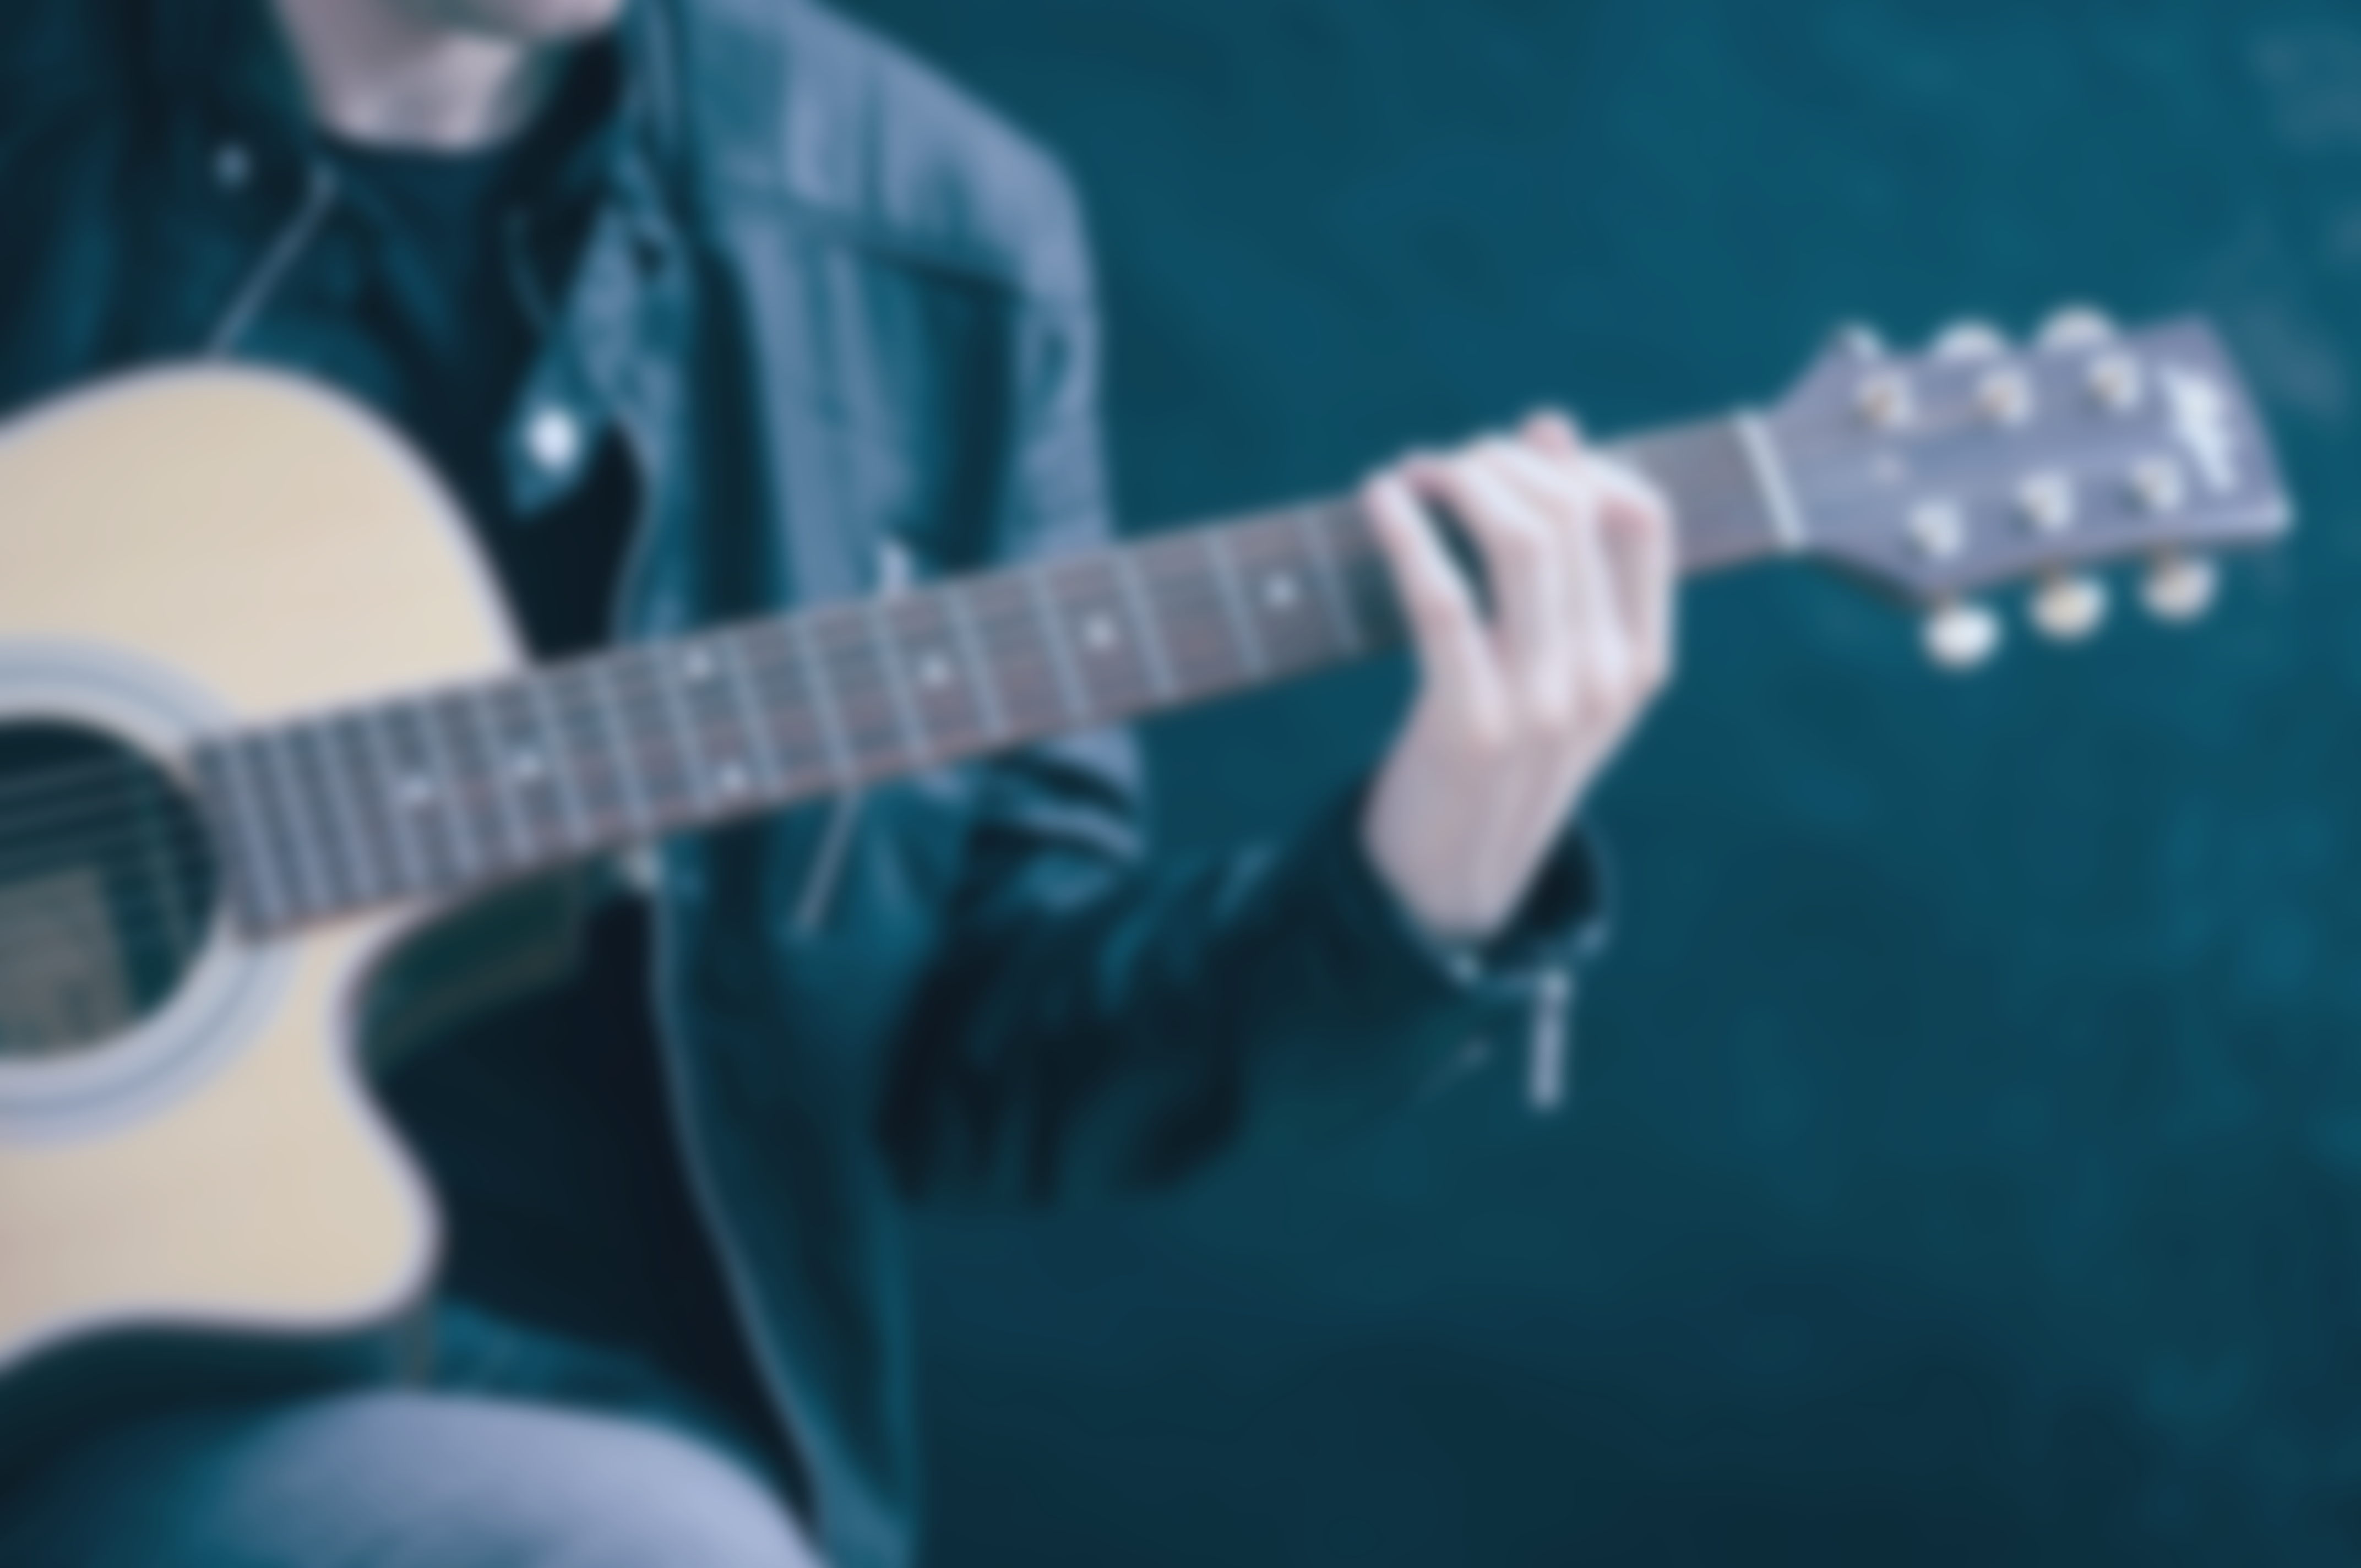 Learn Guitar Online Taught By International Experts 2 Minute Guitar